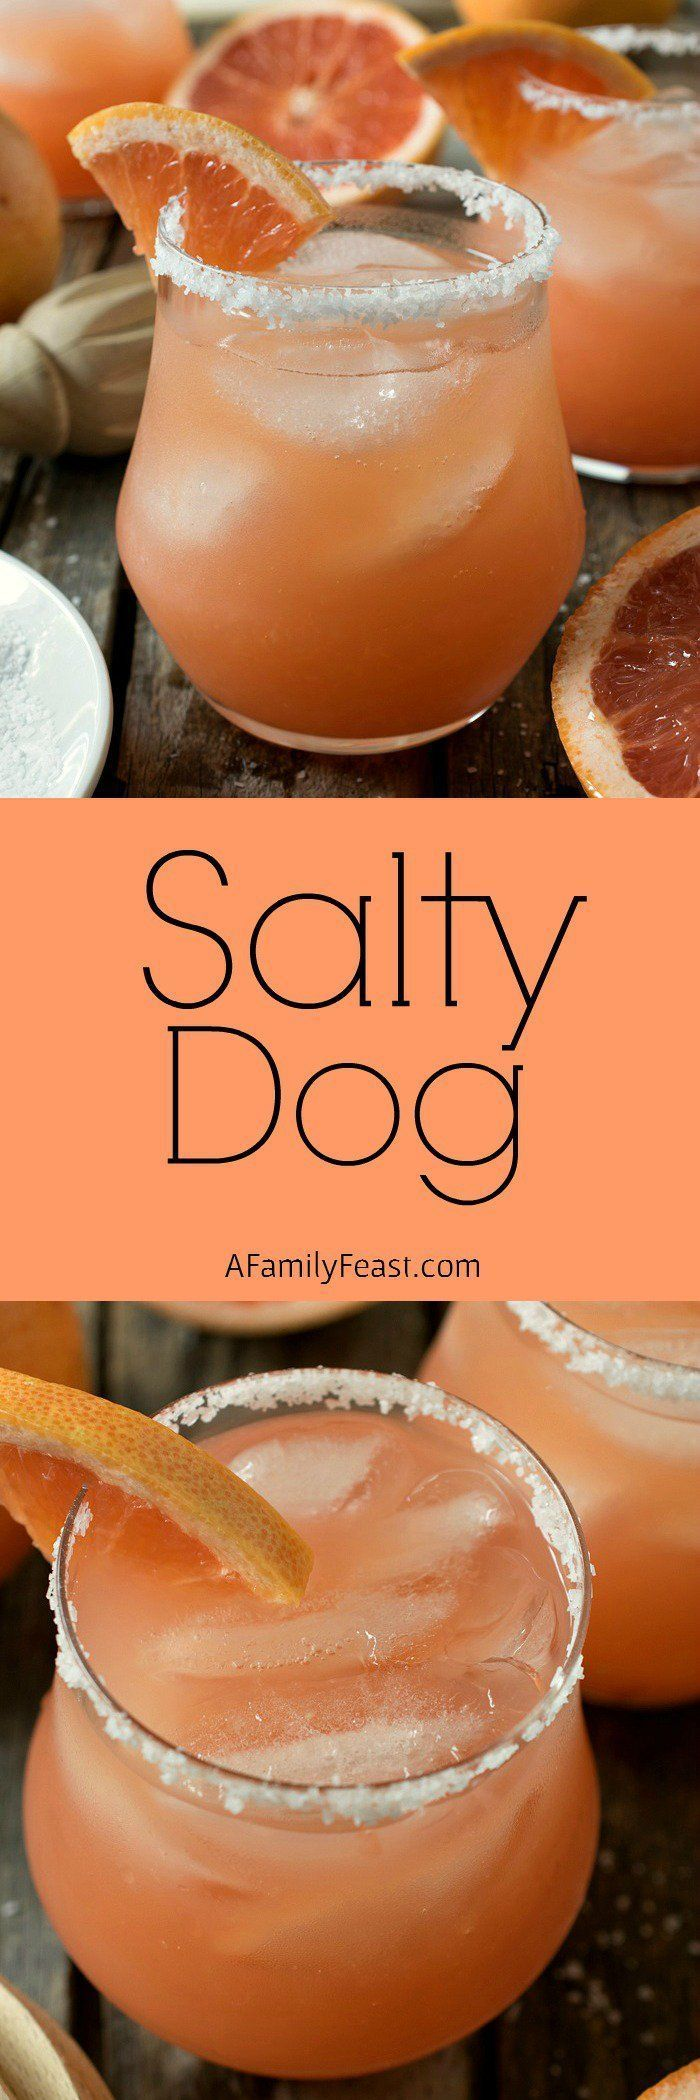 Salty Dog - A delicious cocktail made with grapefruit juice, vodka or gin, and served is a salted-rimmed glass. #cocktaildrinks